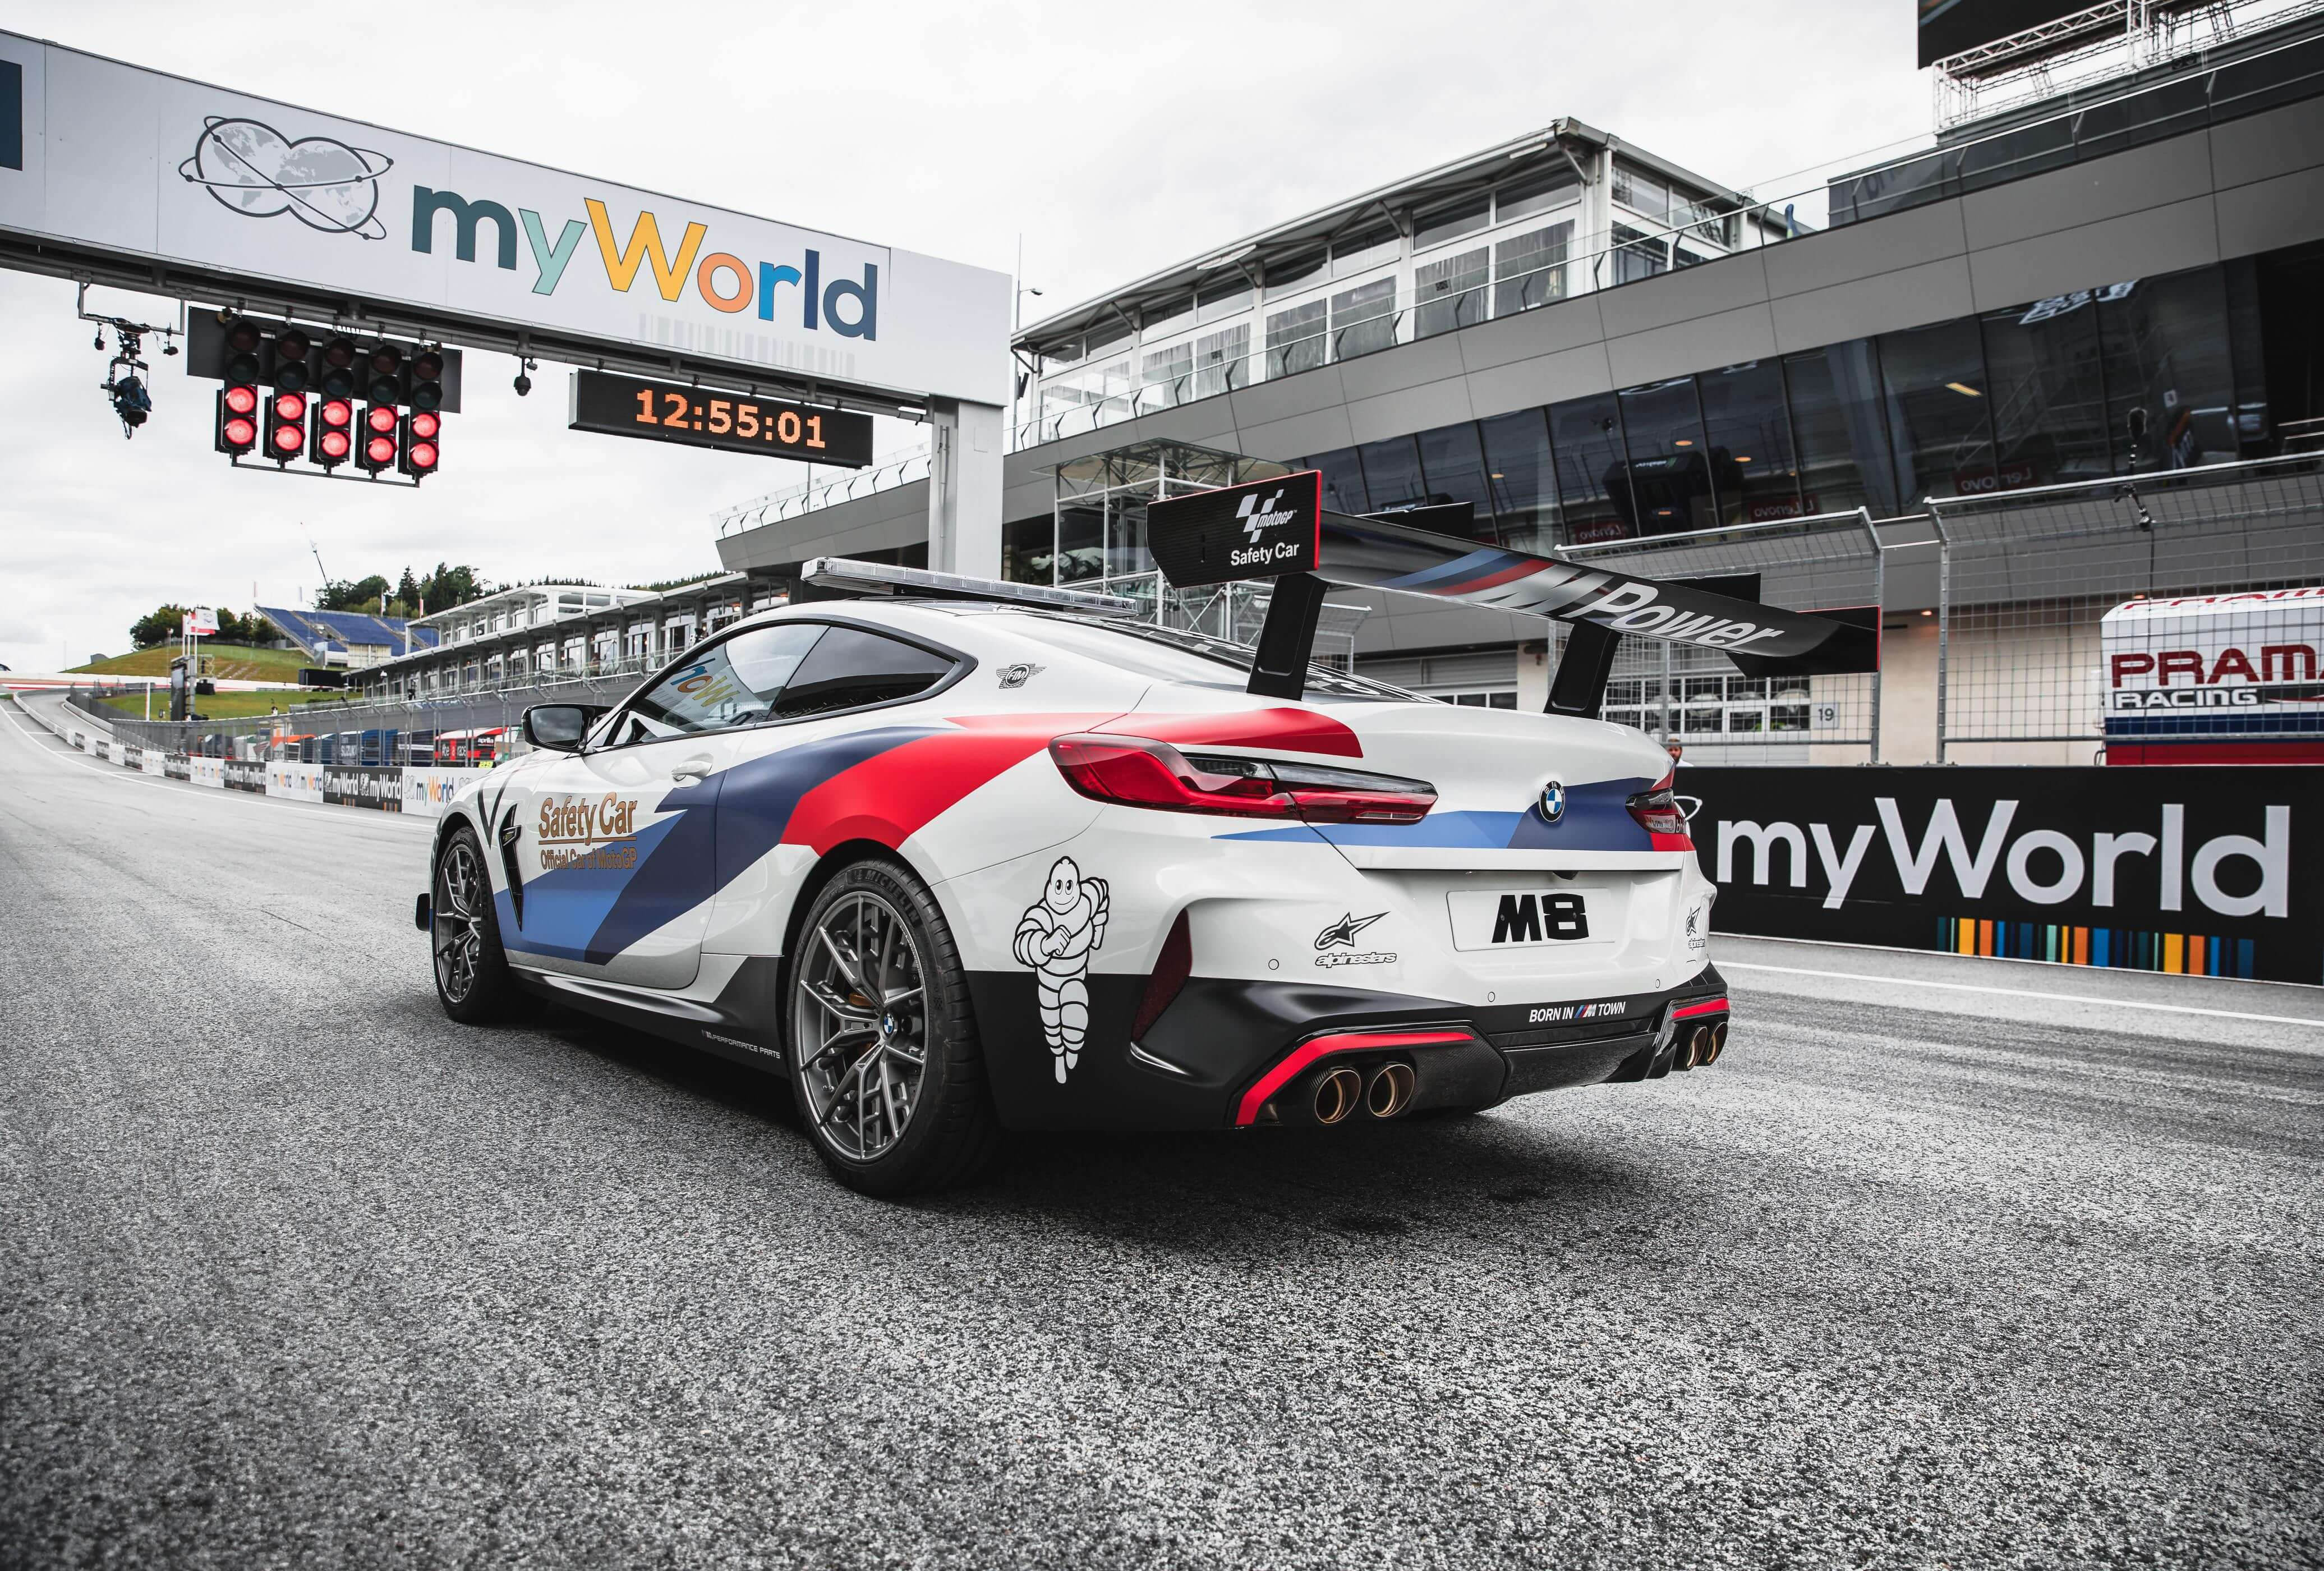 Trasera del BMW M8 MotoGP Safety Car